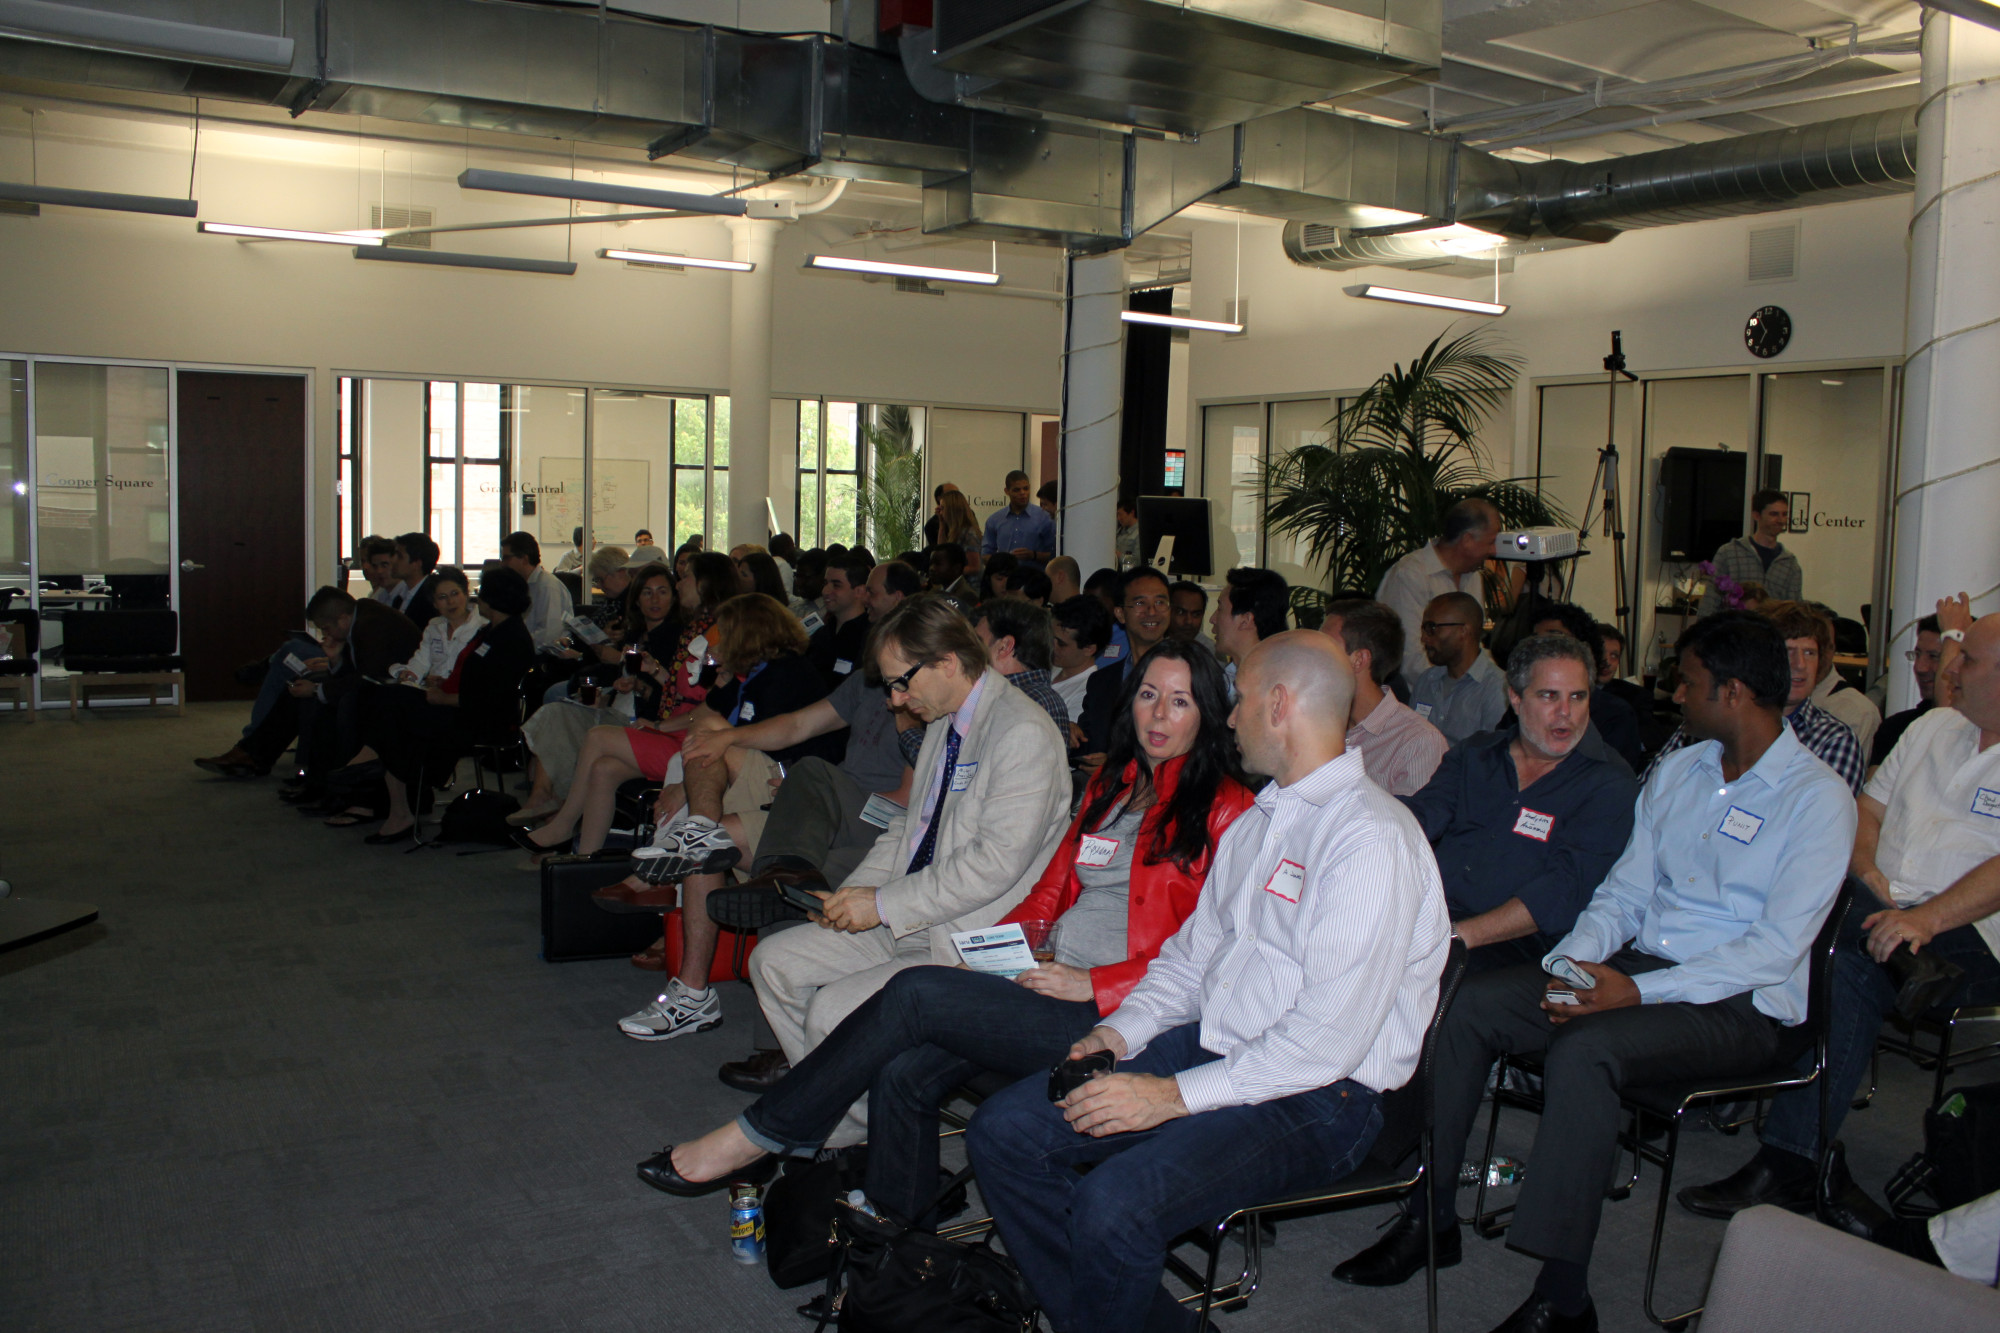 1 Week Ago, TechSeri.es brought together 6 (co)founders, 1 celebrity and over 150 people